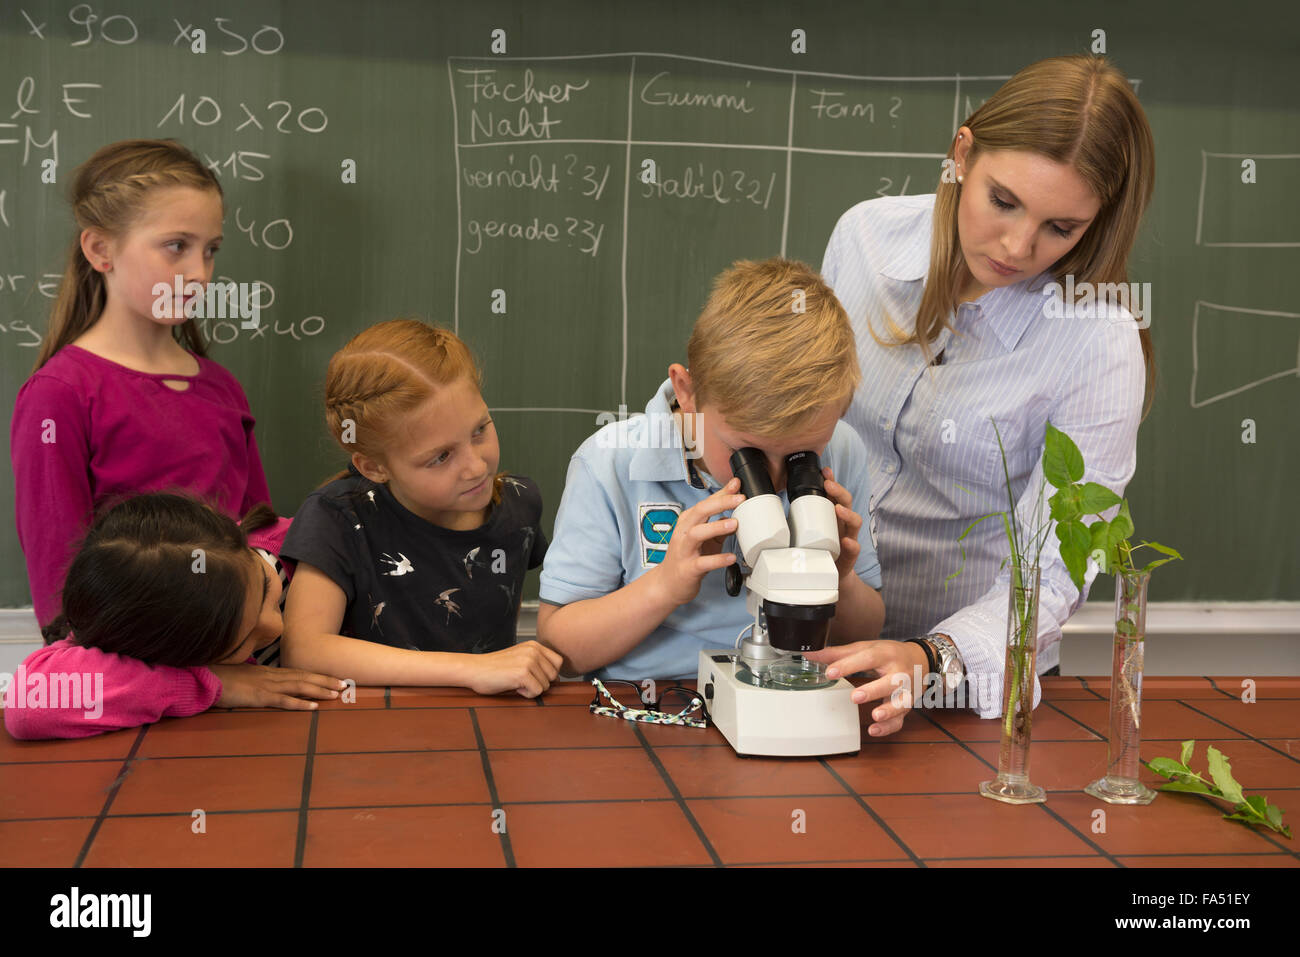 School students with teacher looking through a microscope, Fürstenfeldbruck, Bavaria, Germany - Stock Image